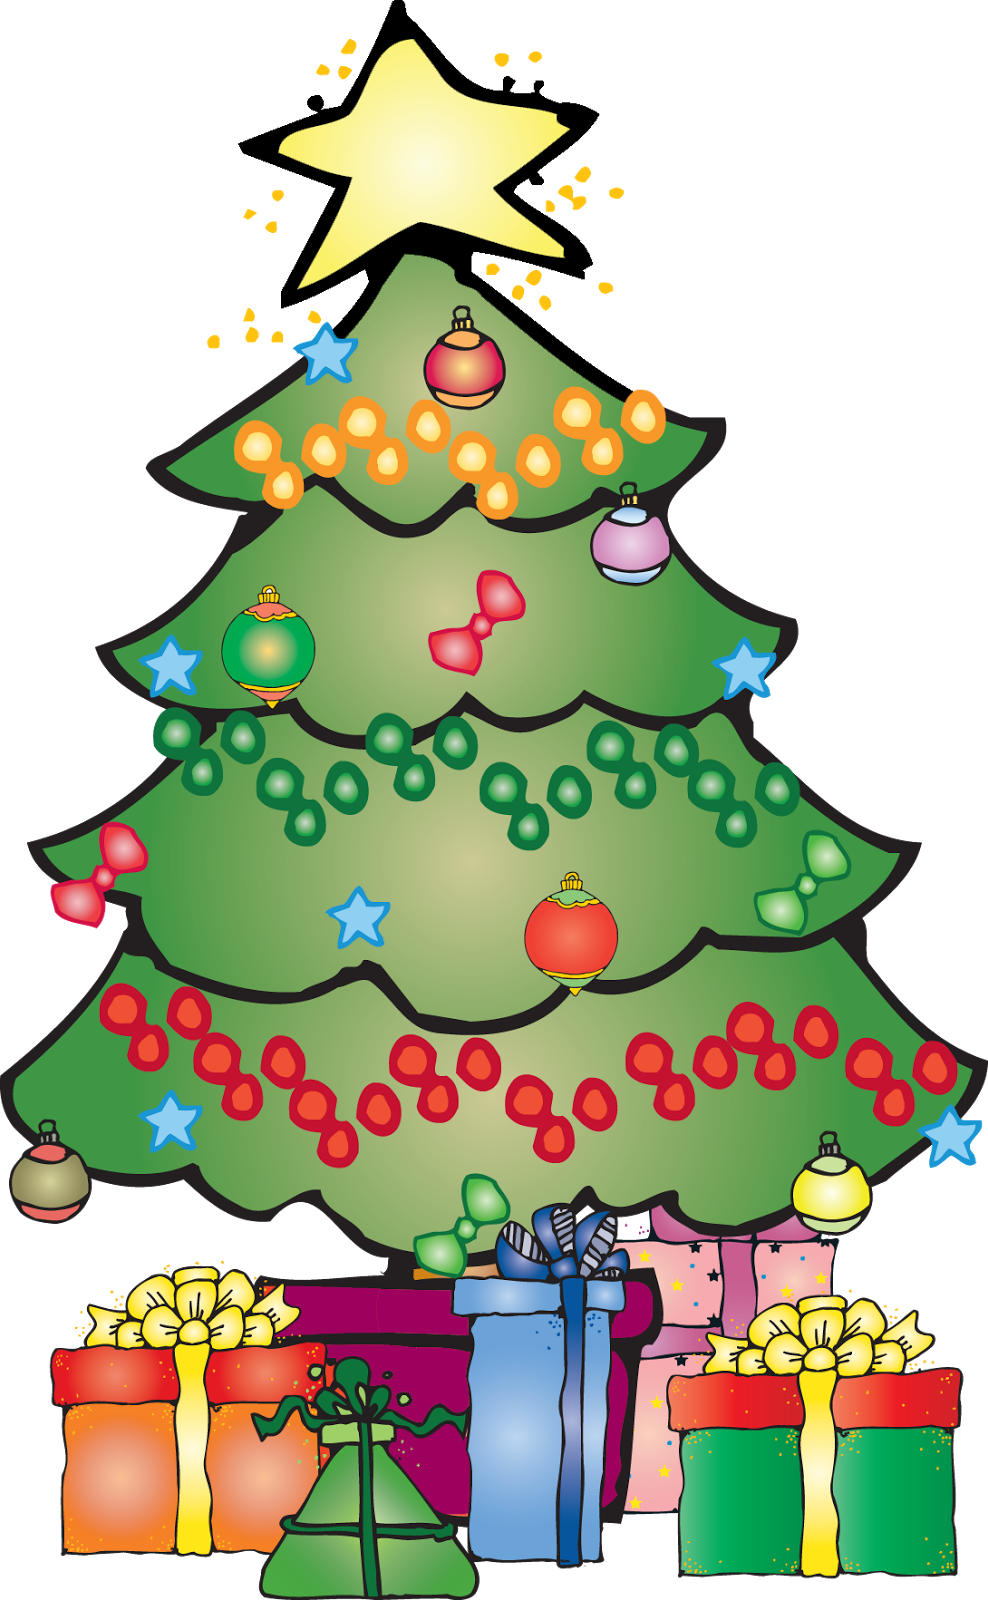 Preschool clipart christmas. Melonheadz freebies google illustration